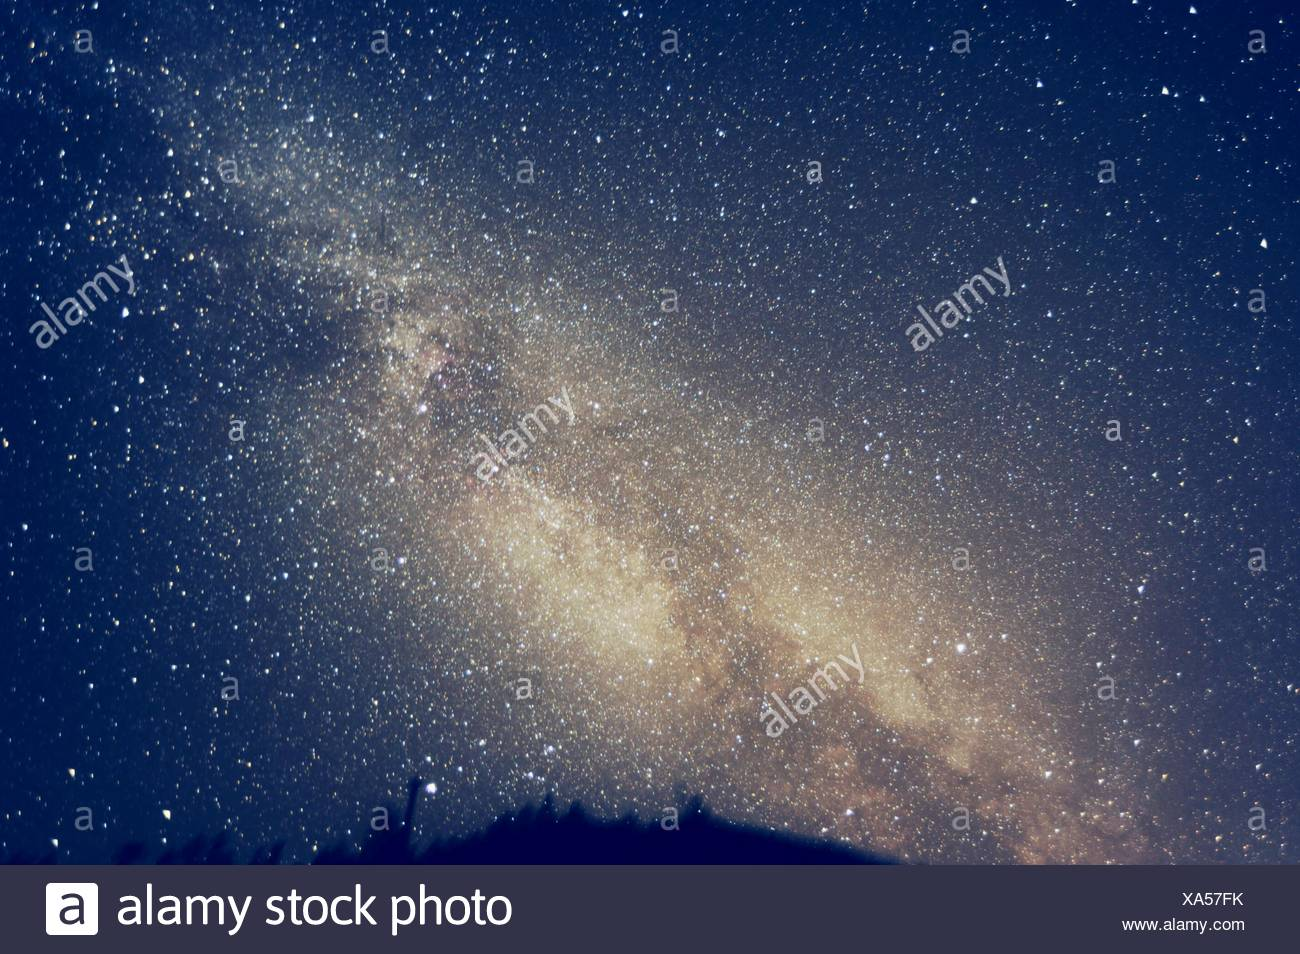 Low Angle View Of Stars In Sky - Stock Image